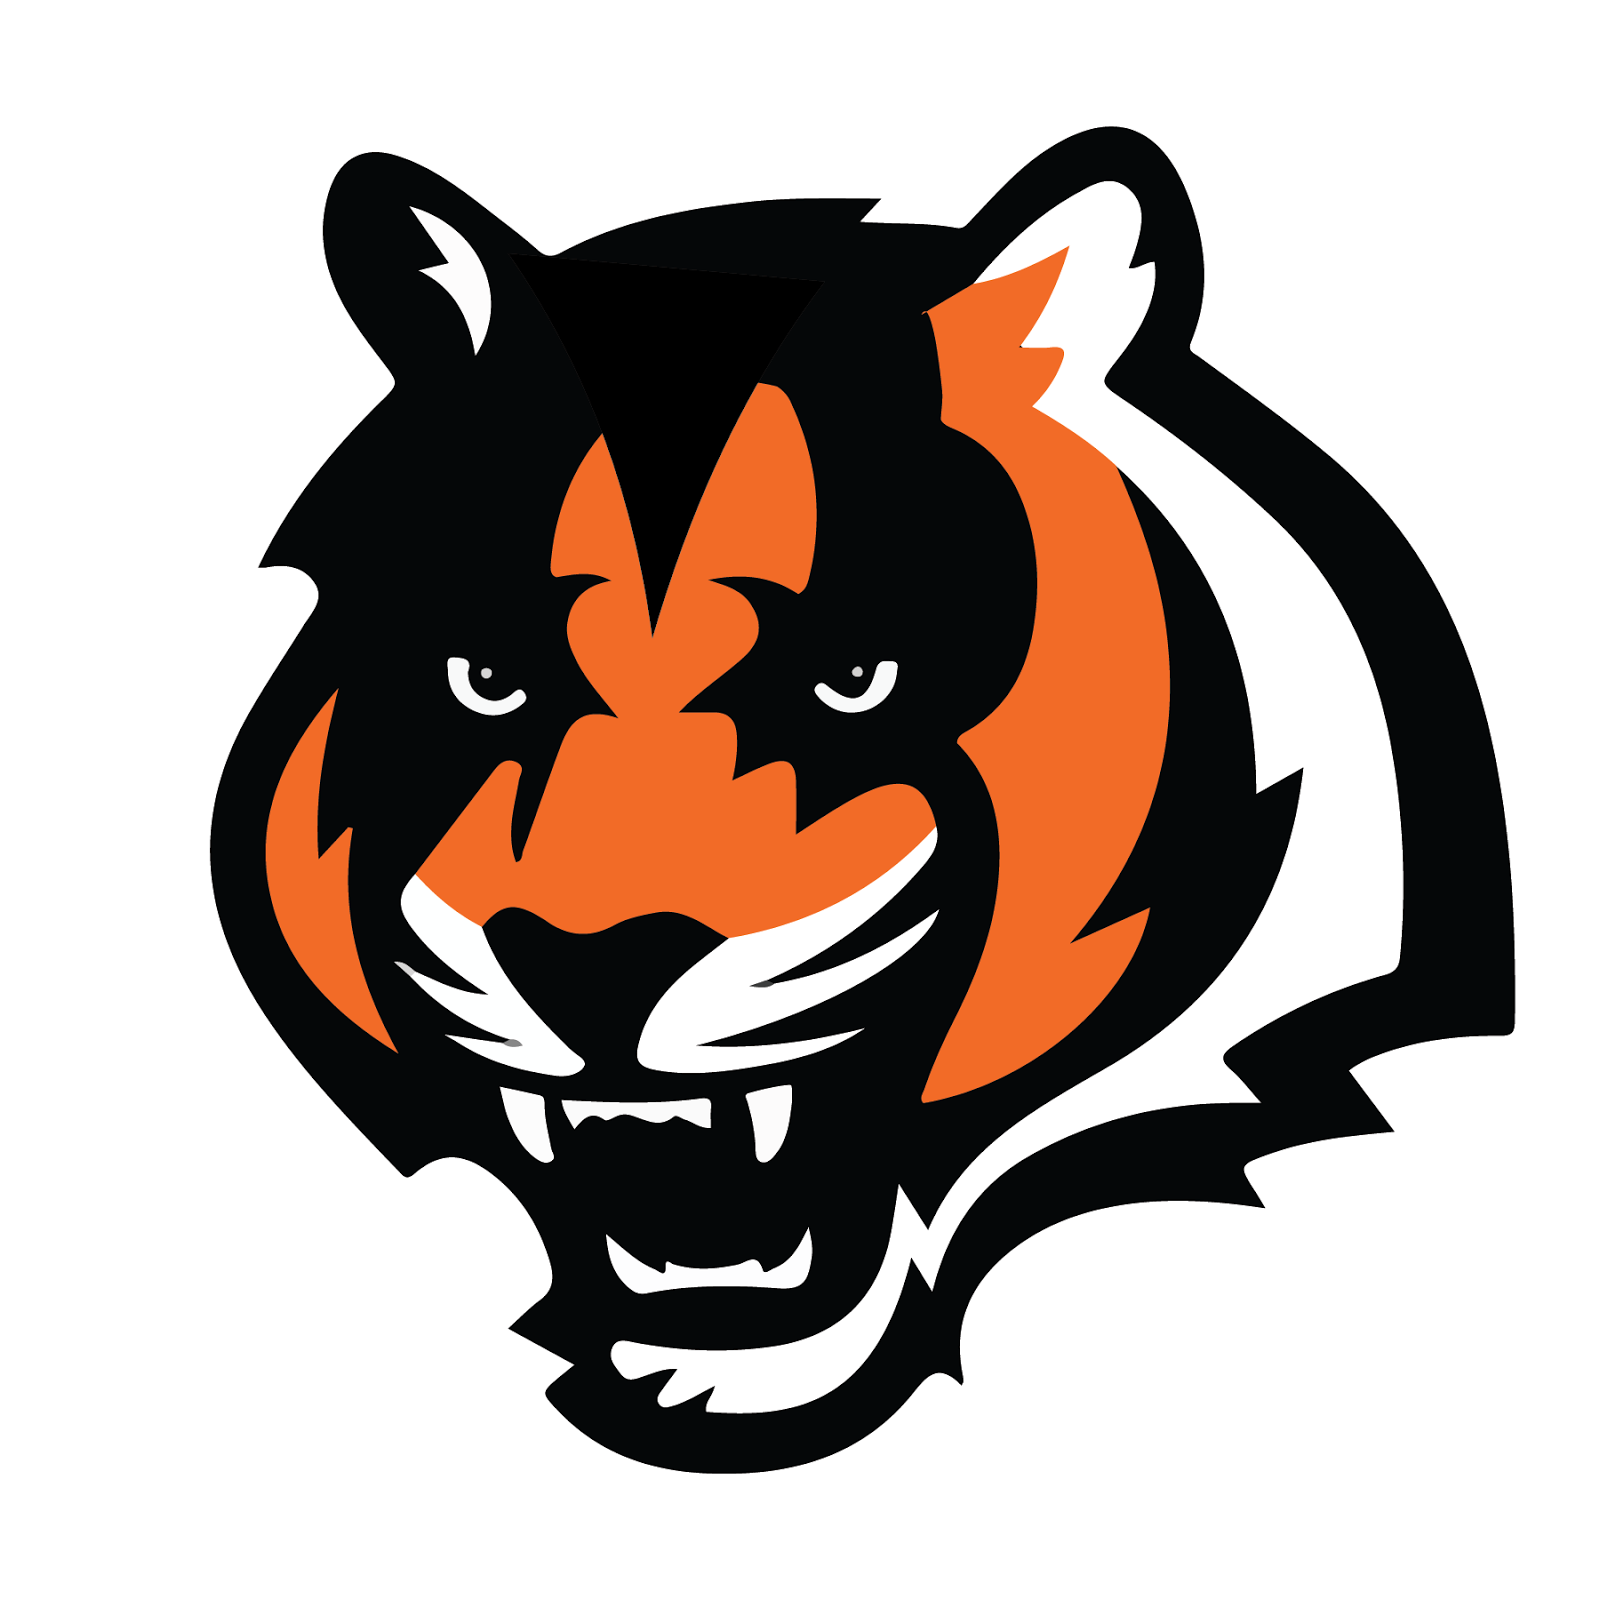 Cincinnati Bengals, metal, logo, re-imagined